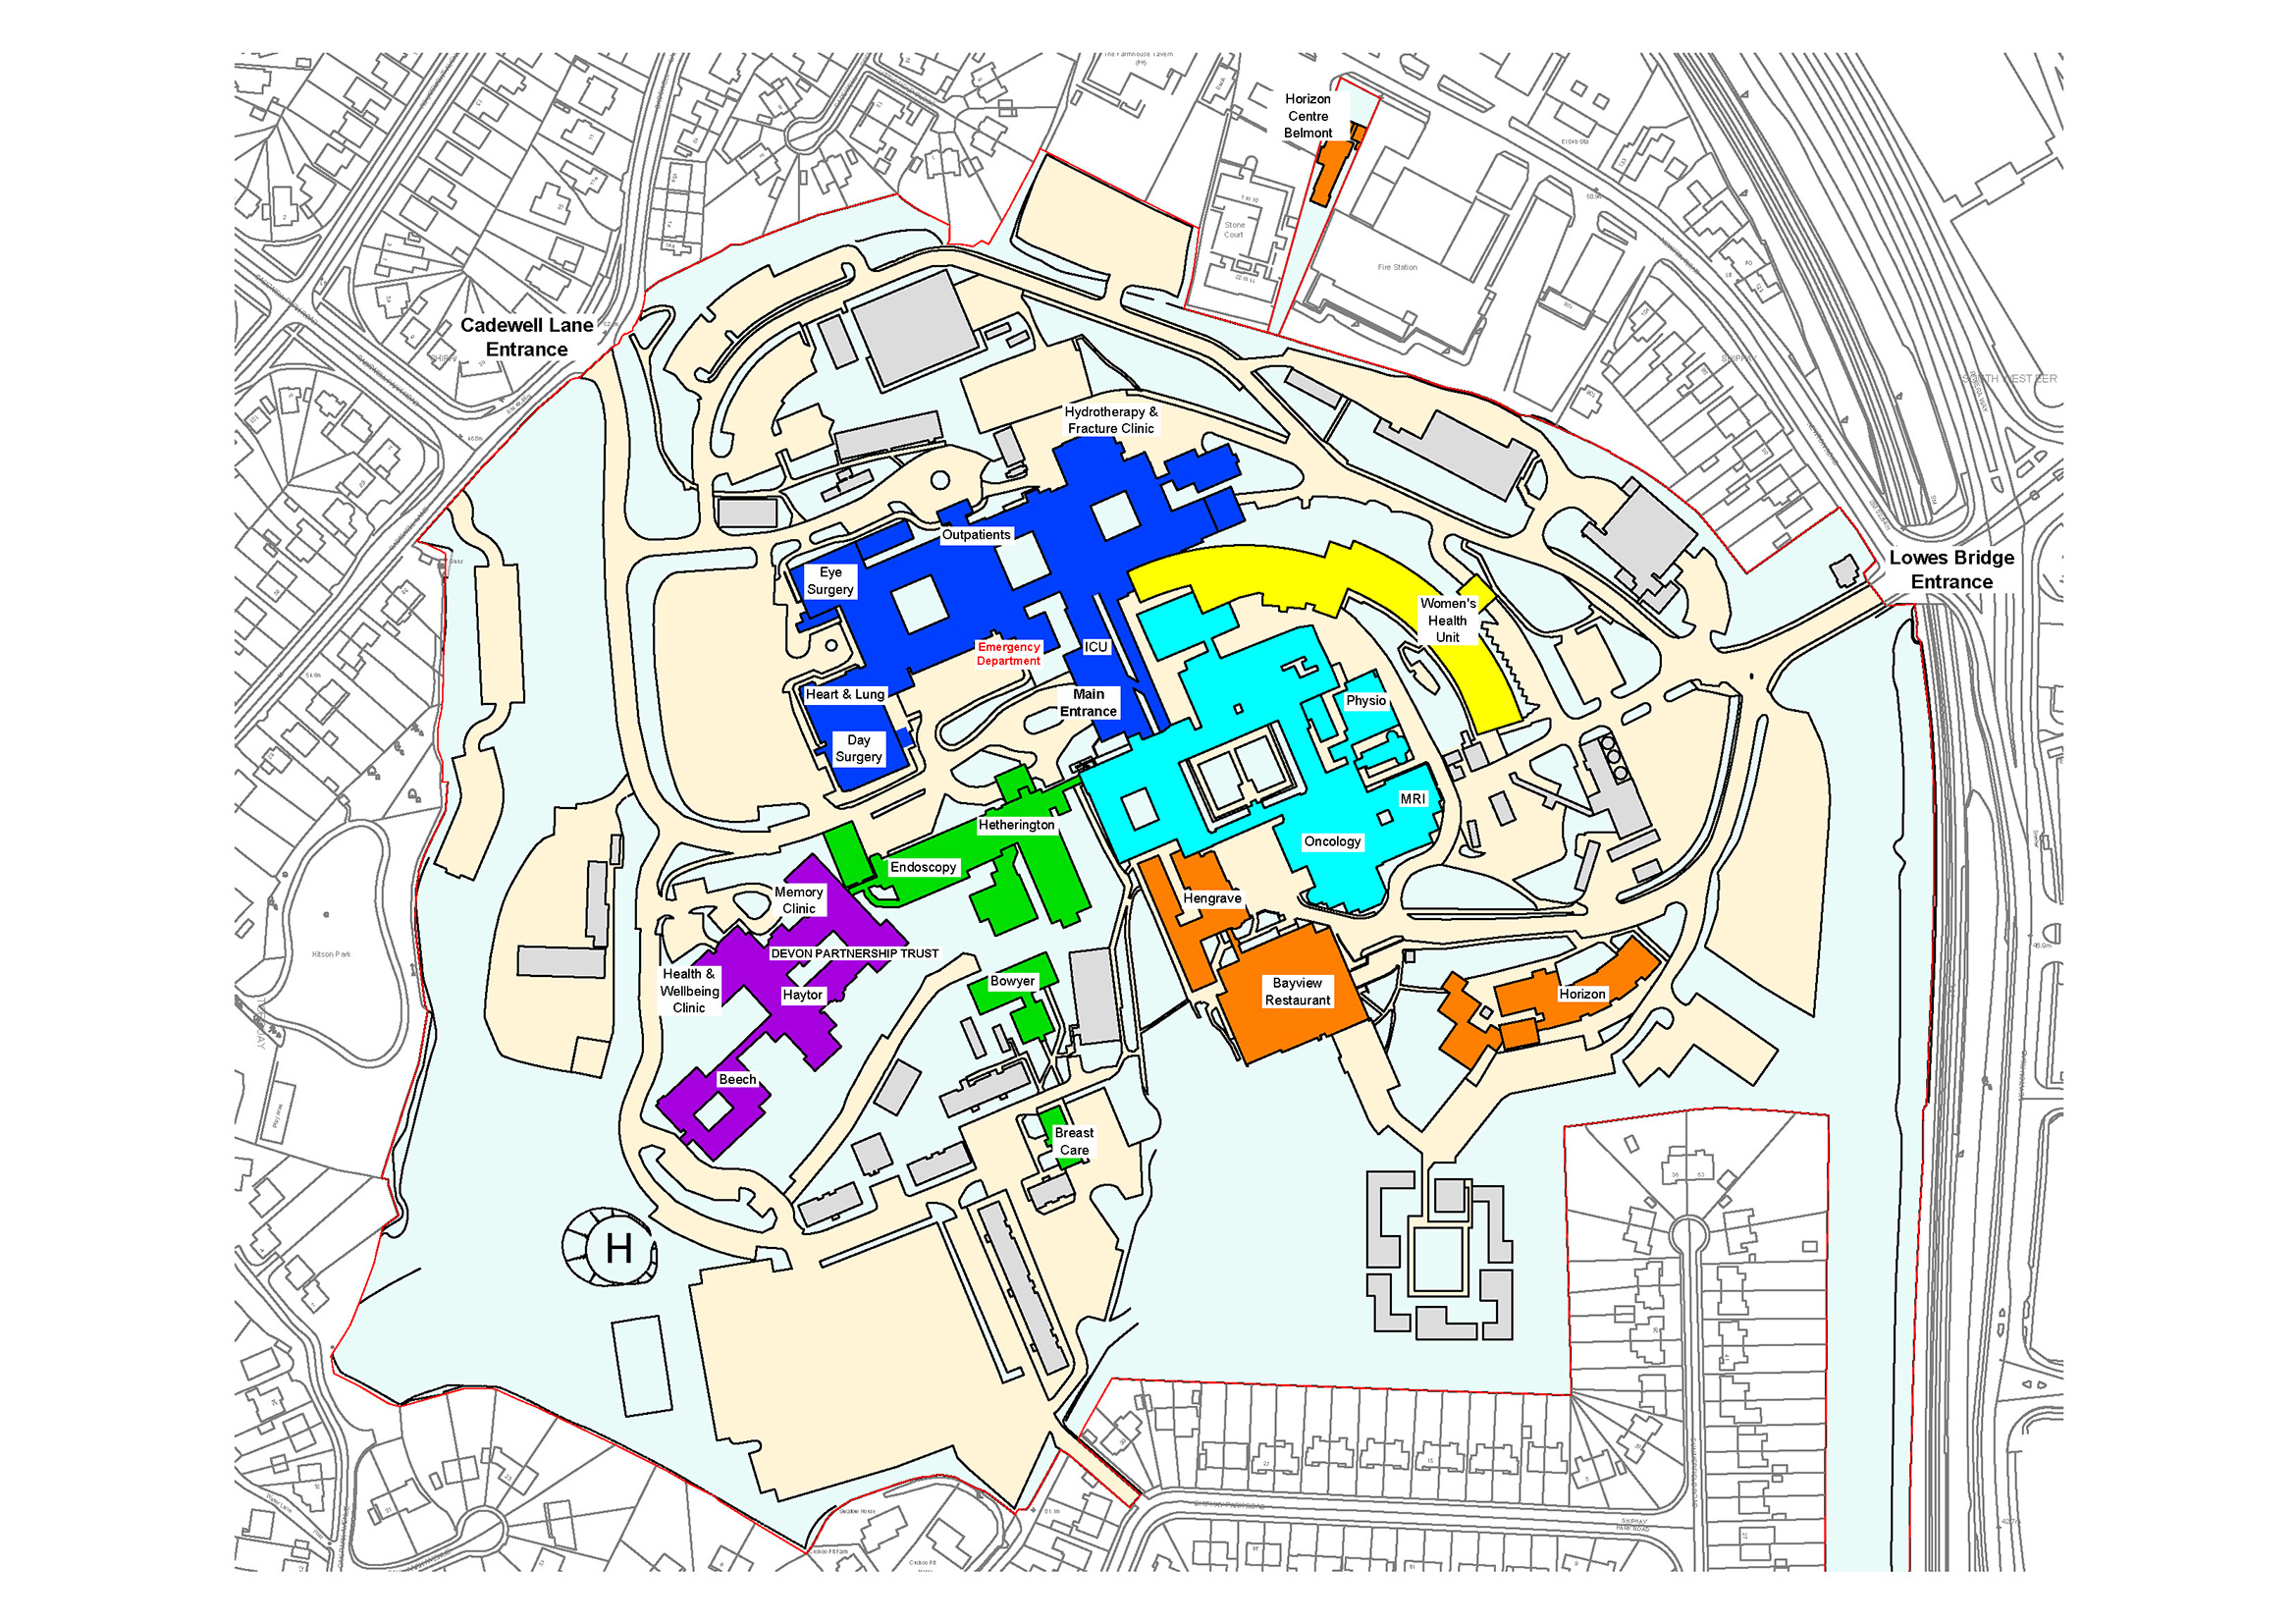 Torbay Hospital maps Torbay and South Devon NHS Foundation Trust